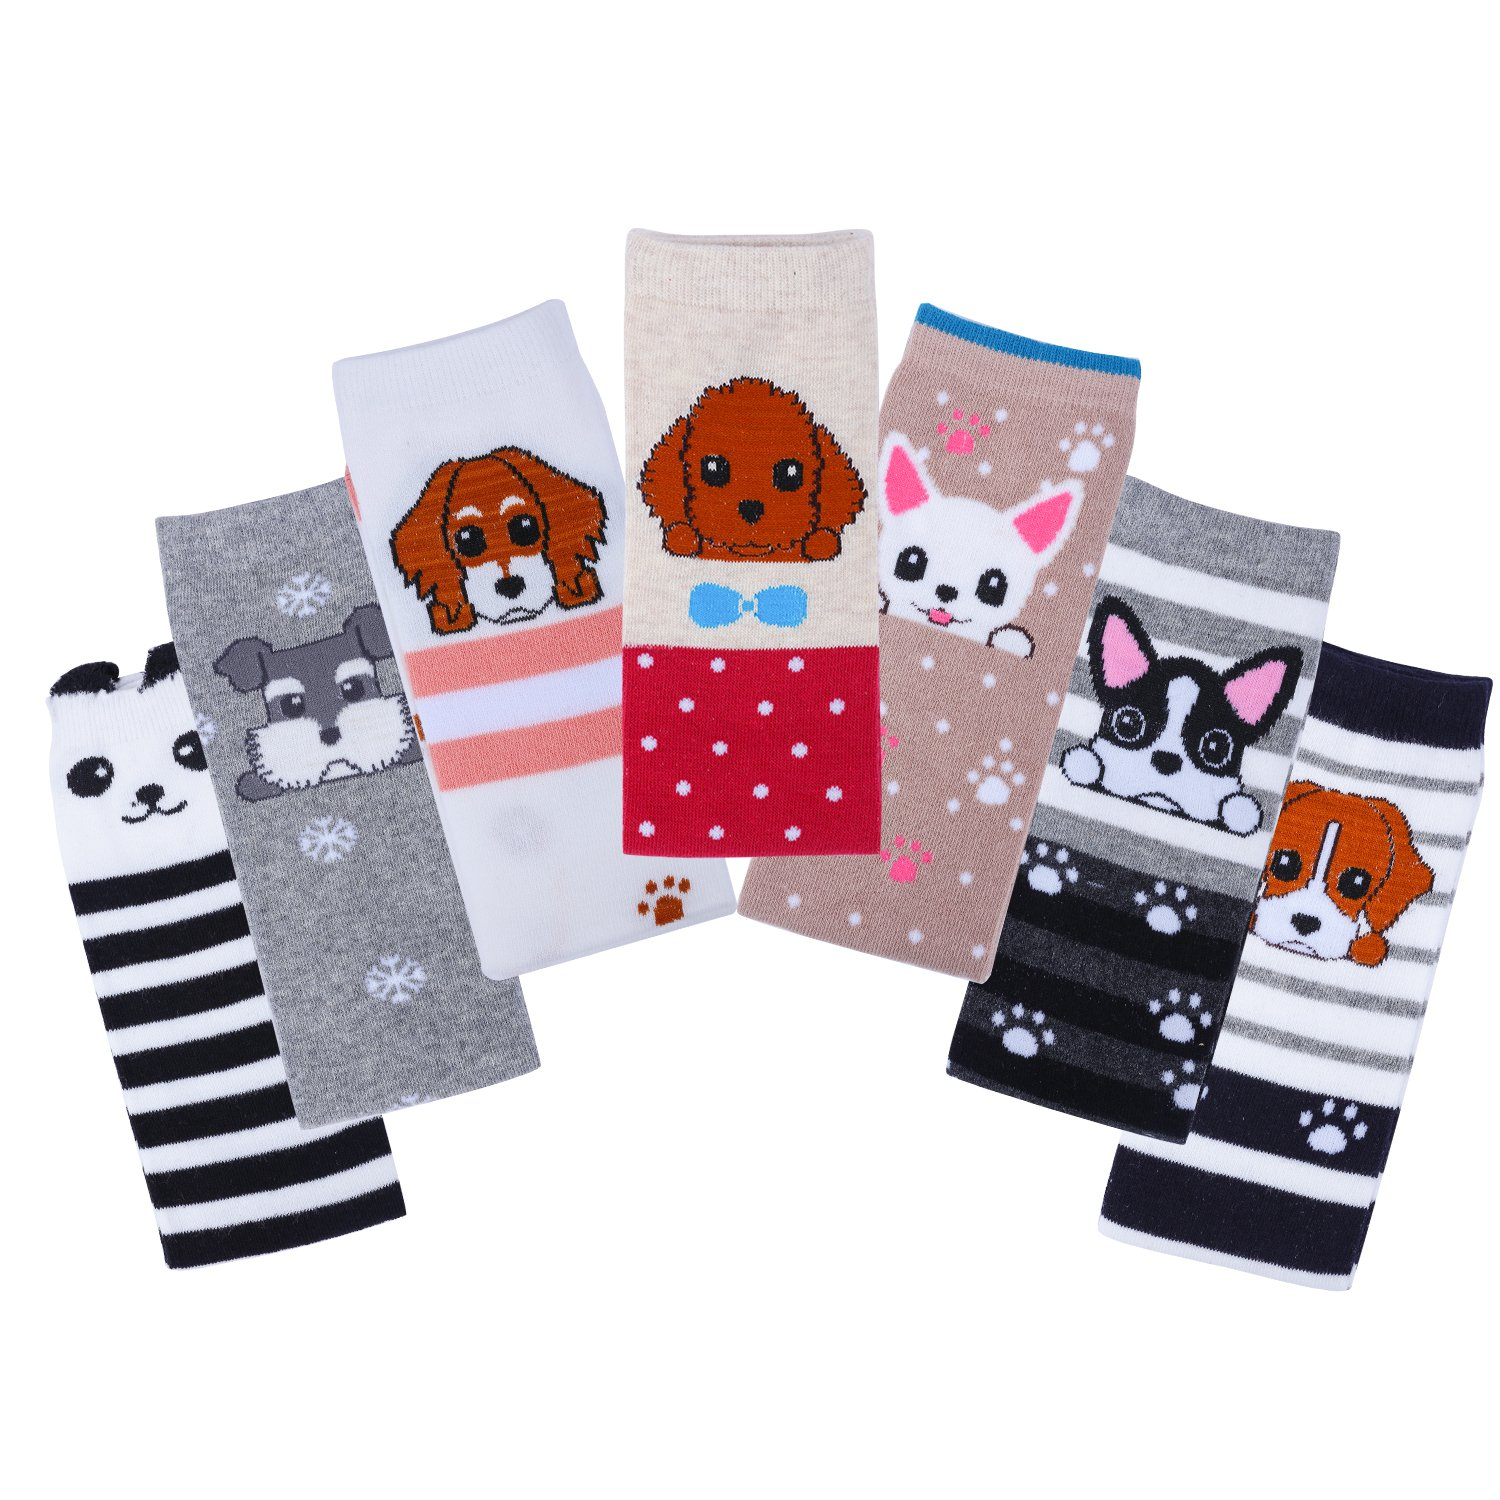 7 Pack Cute Animal Pattern Design Thermal Knee High Socks Compression Stockings for Baby Girls Christmas